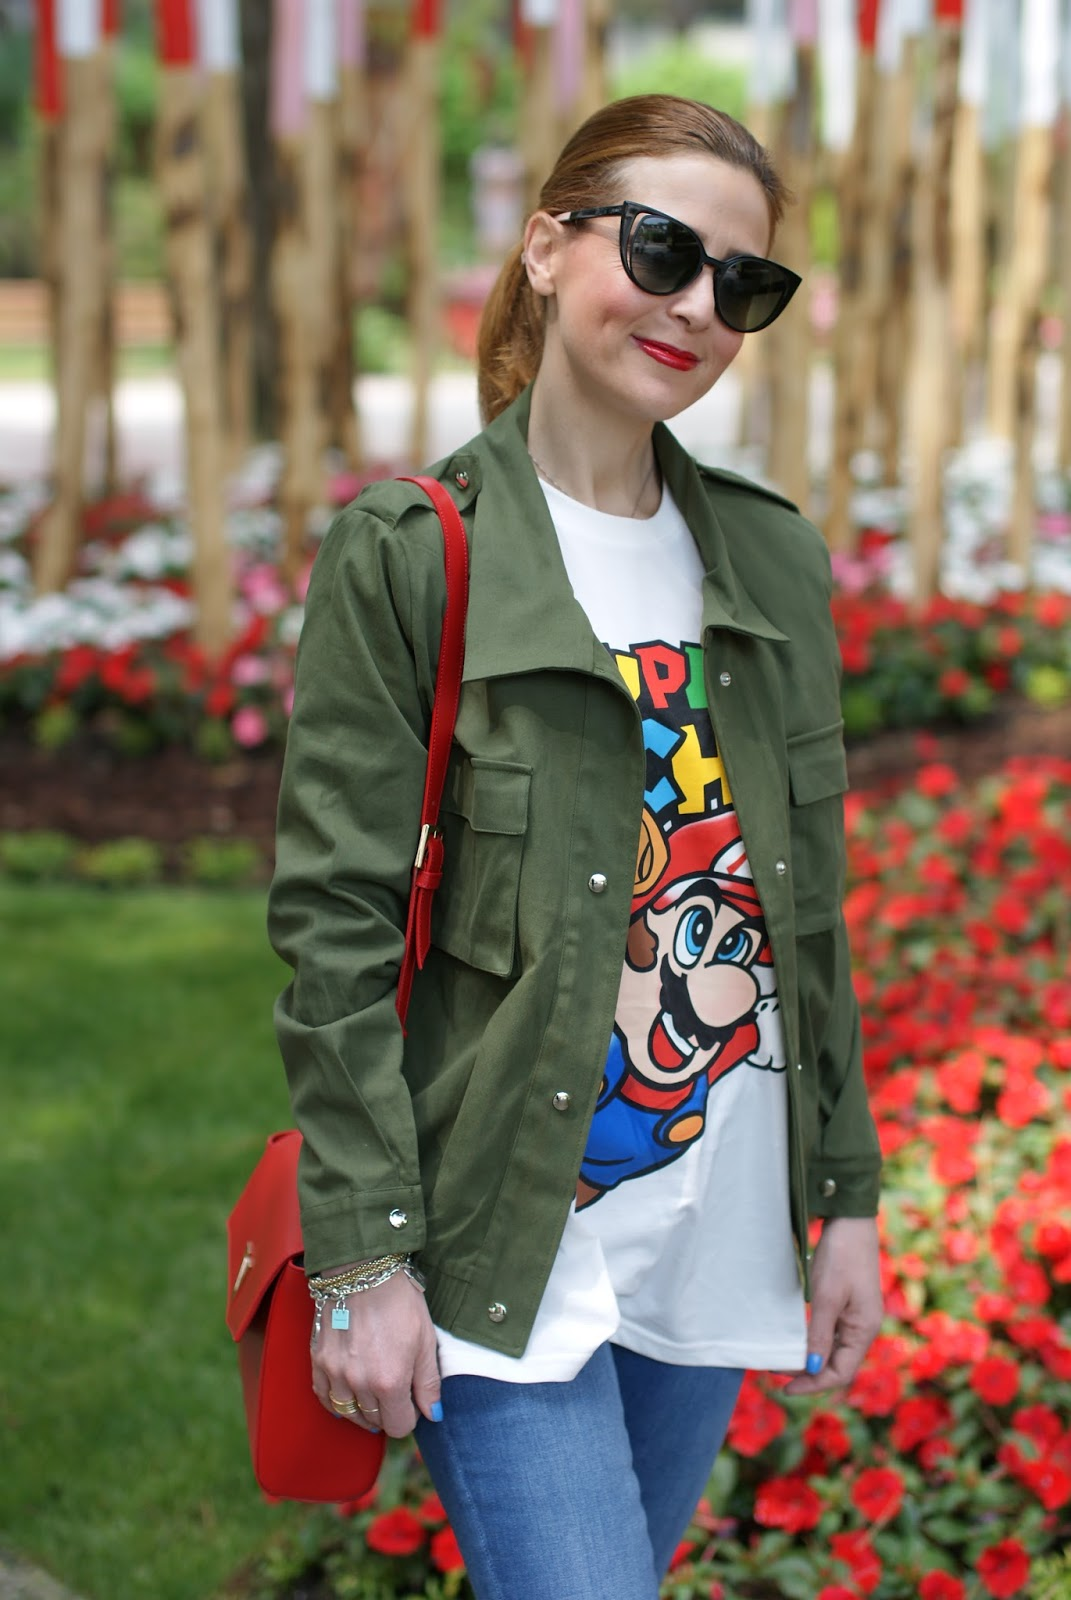 Moschino Super Moschino t-shirt with Super Mario bros, Lookbook Store army green jacket on Fashion and Cookies fashion blog, fashion blogger style